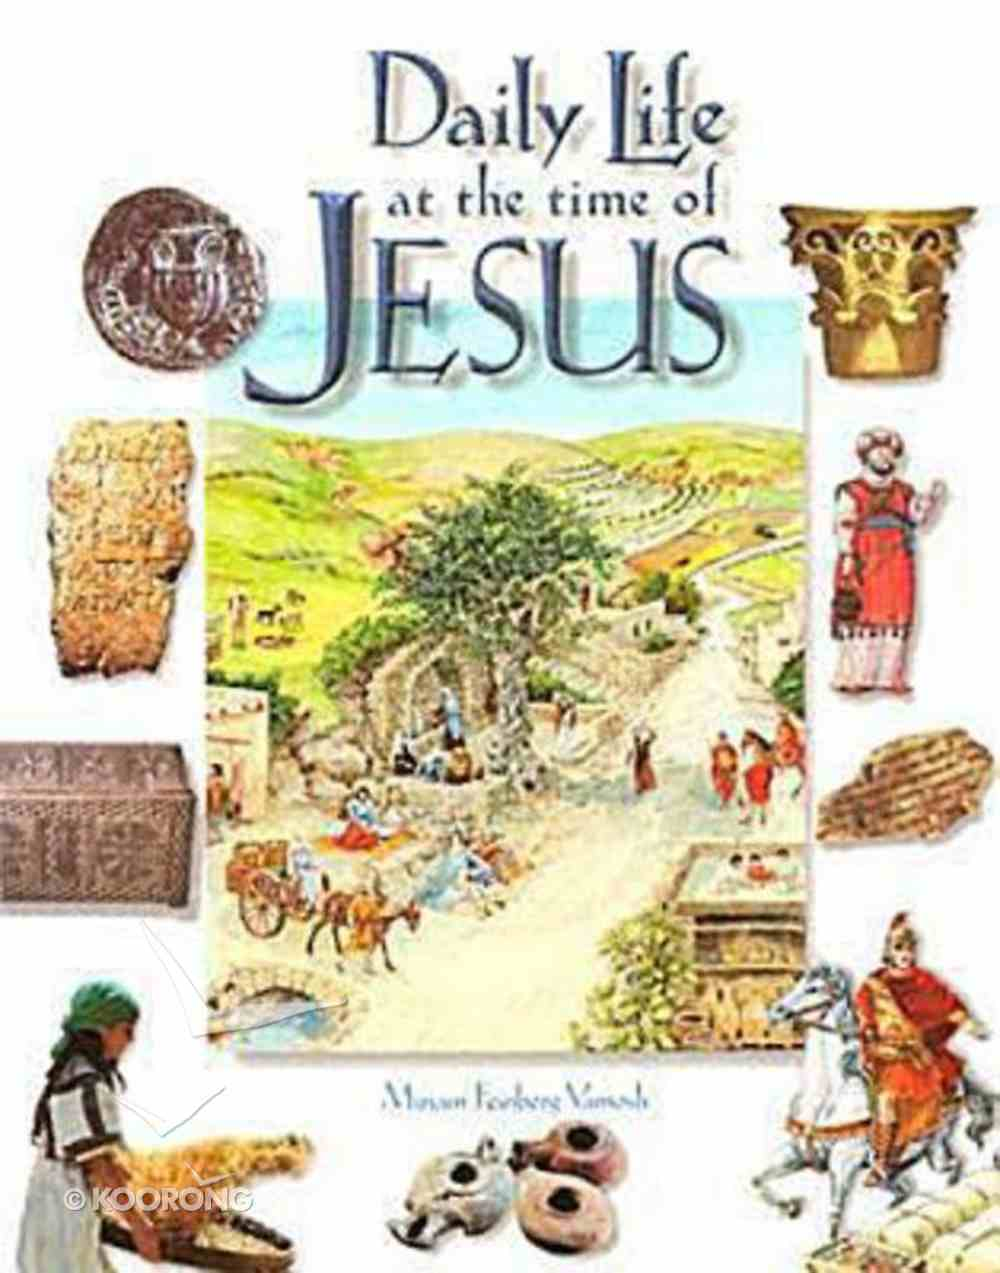 Daily Life At the Time of Jesus Paperback